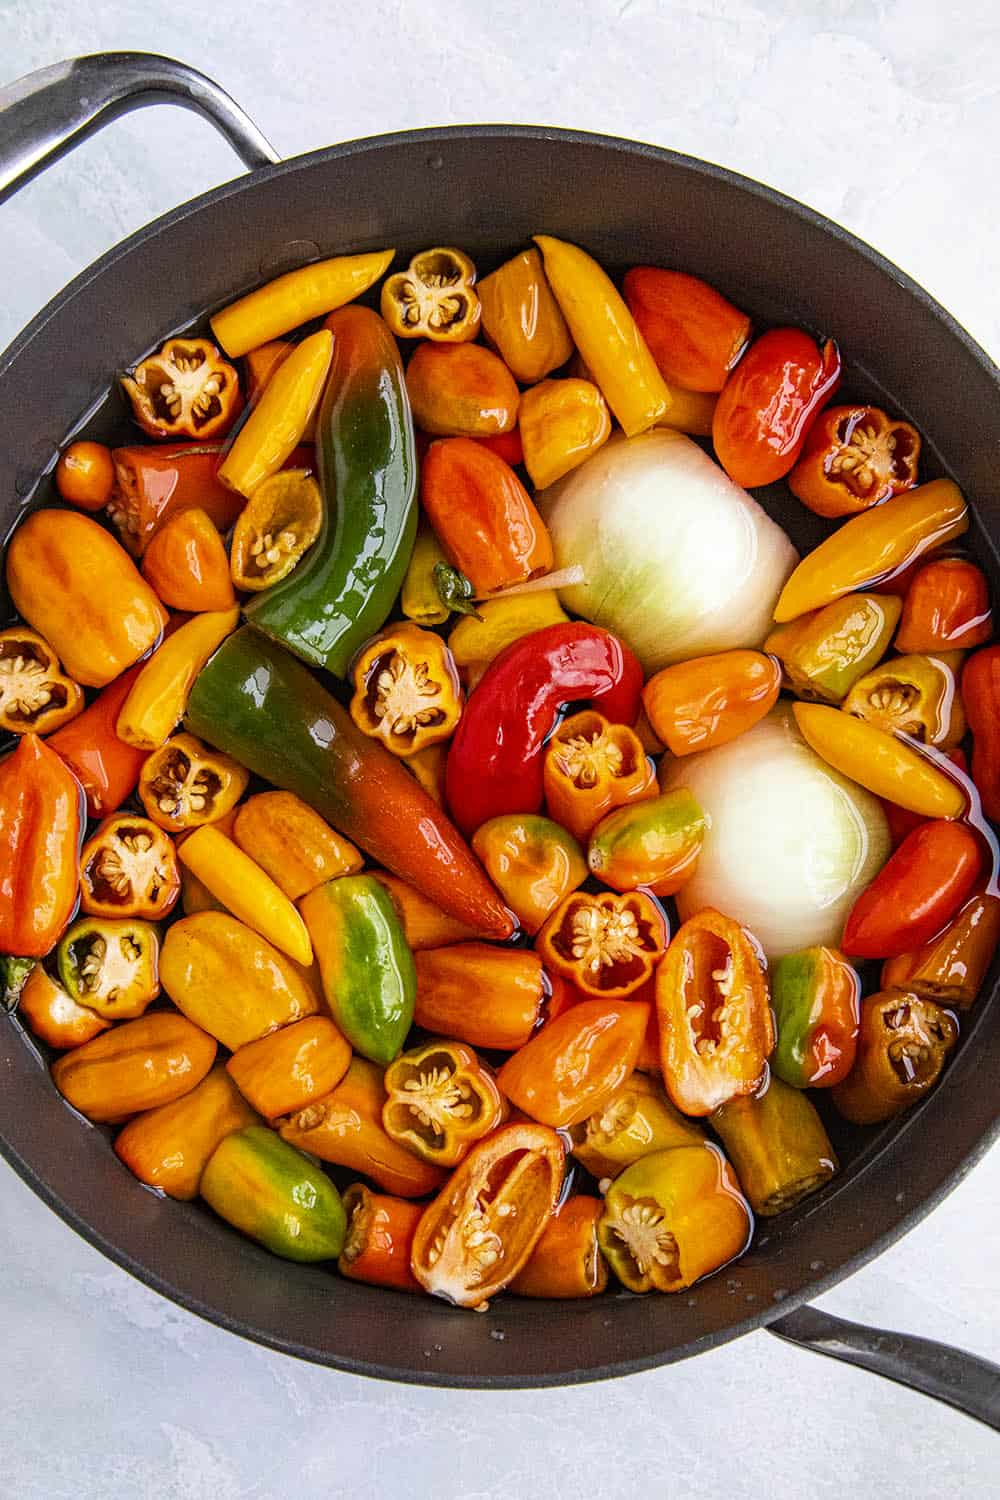 Boiling peppers and onions to make chili sauce